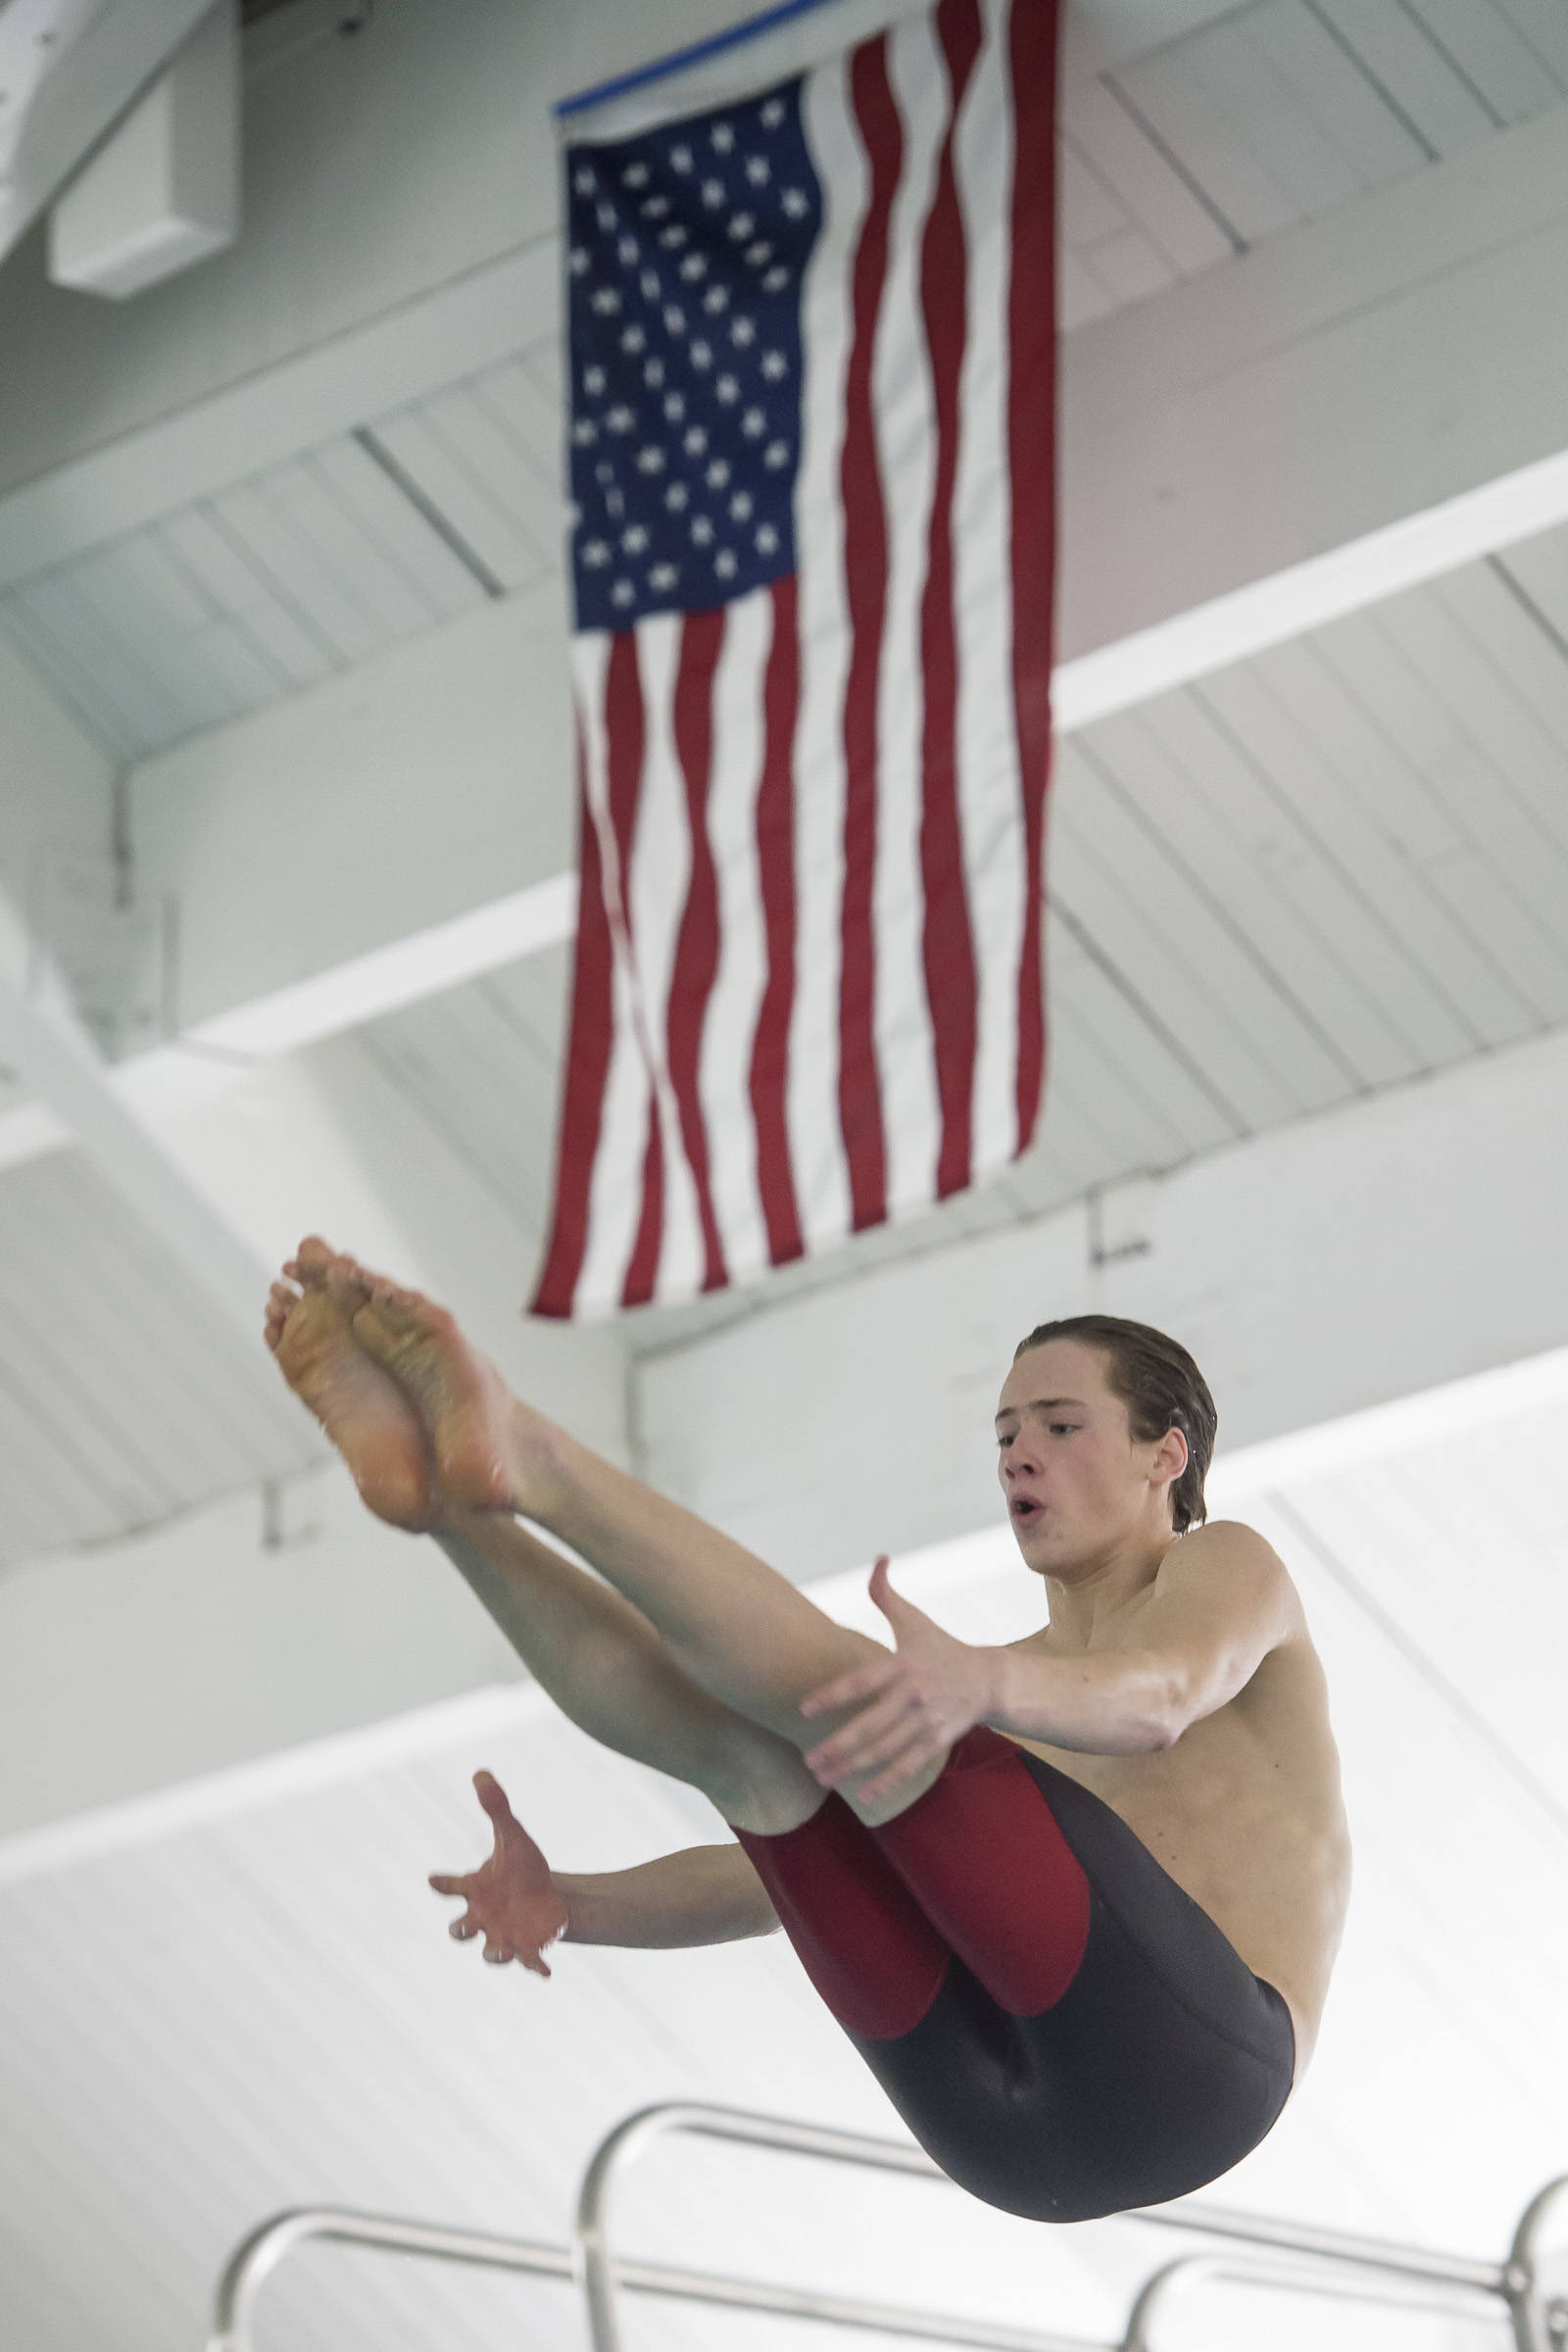 Juneau-Douglas High School senior Cian Hart practices his diving at the Augustus Brown Swimming Pool on Wednesday, Oct. 17, 2018. (Michael Penn | Juneau Empire)